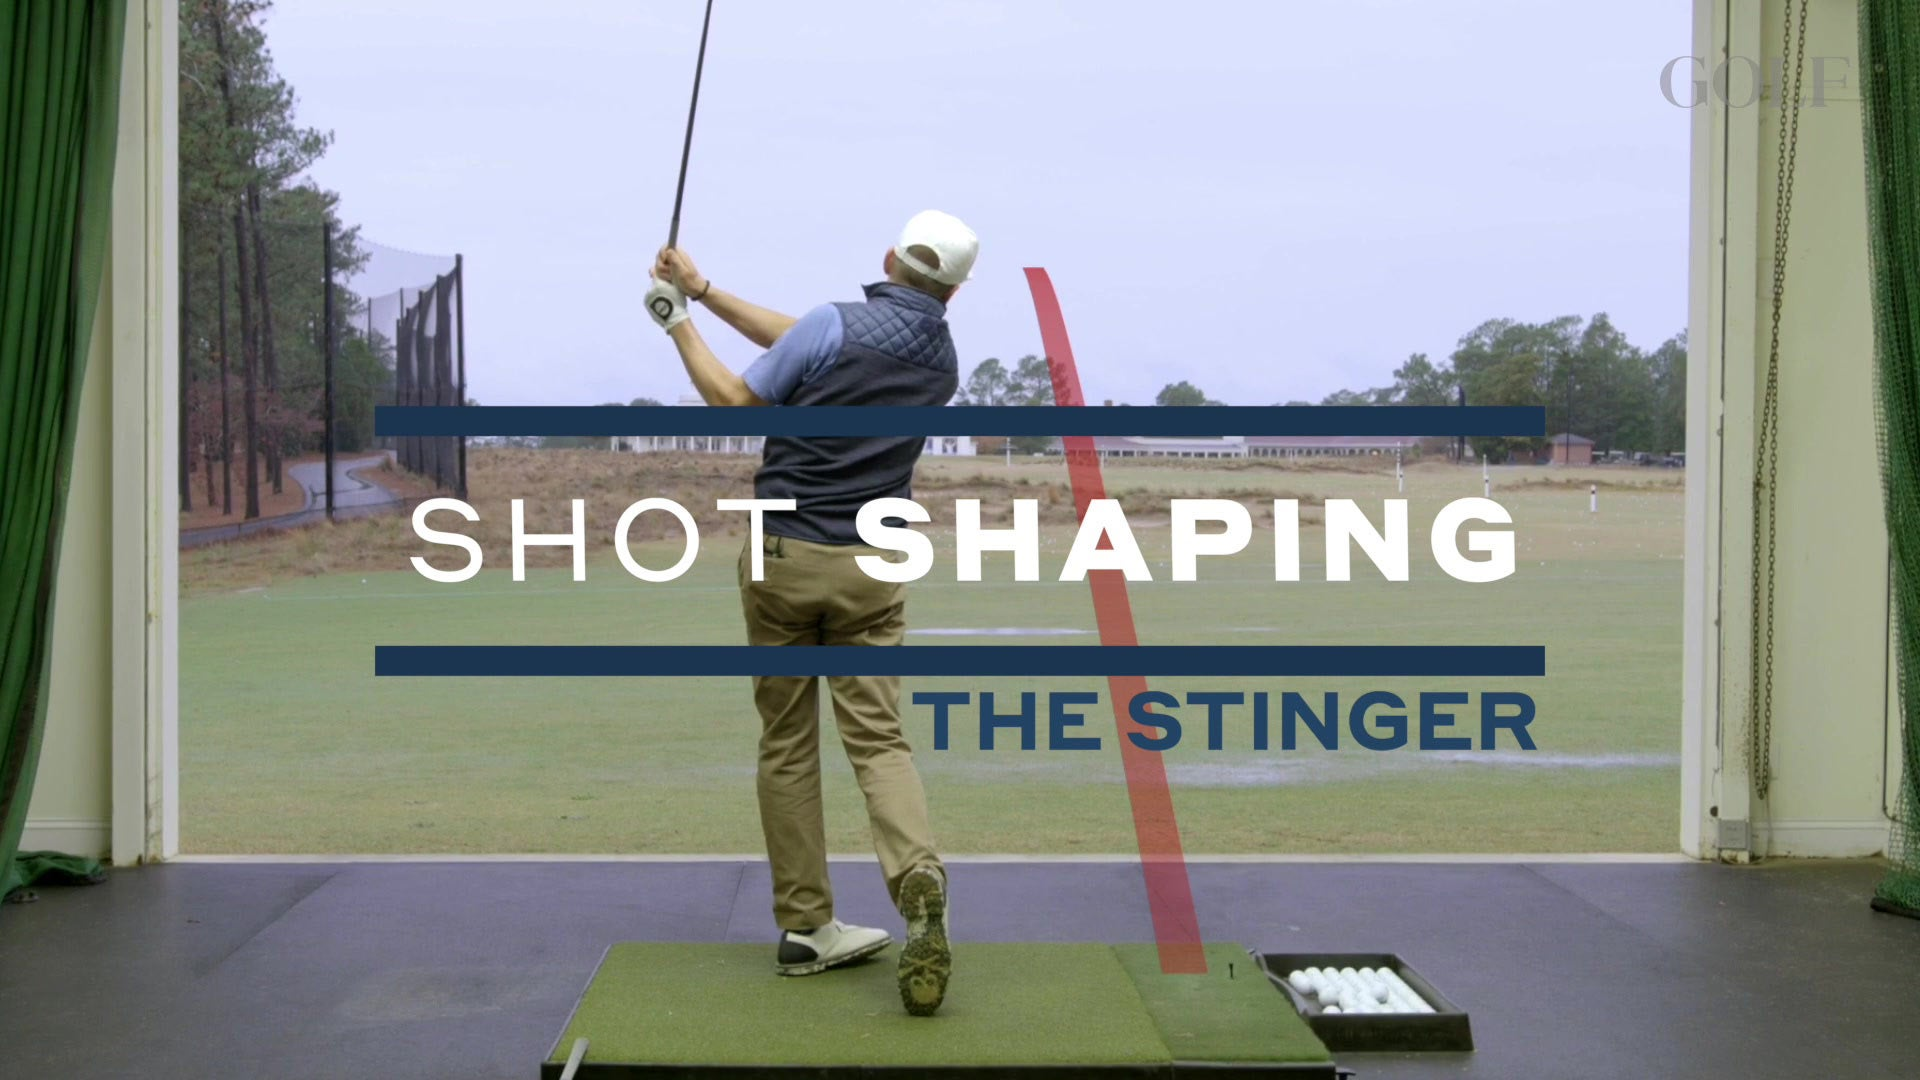 Shot Shaping: The Stinger to keep the ball low or hit into the wind